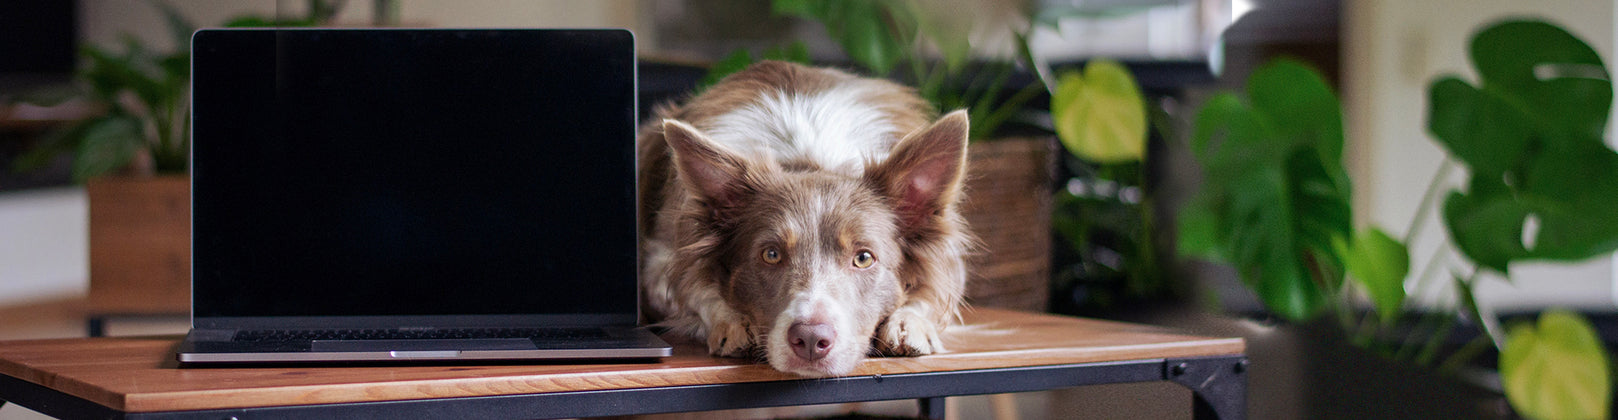 DIY Doggie Daycare: 3 Simple Tips for Keeping Your Pup Busy When You Work from Home